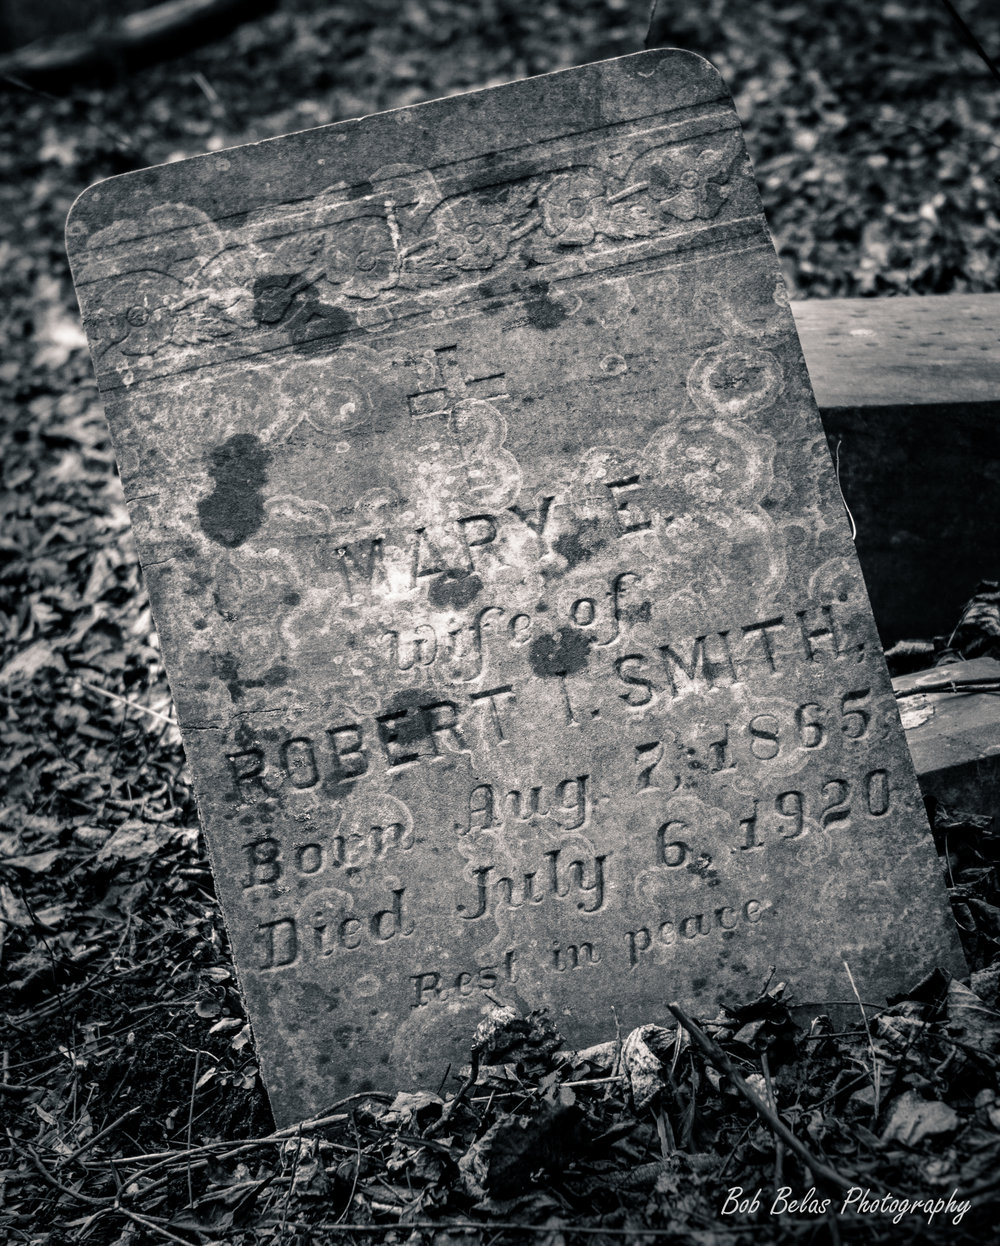 The Grave Of Mary Smith